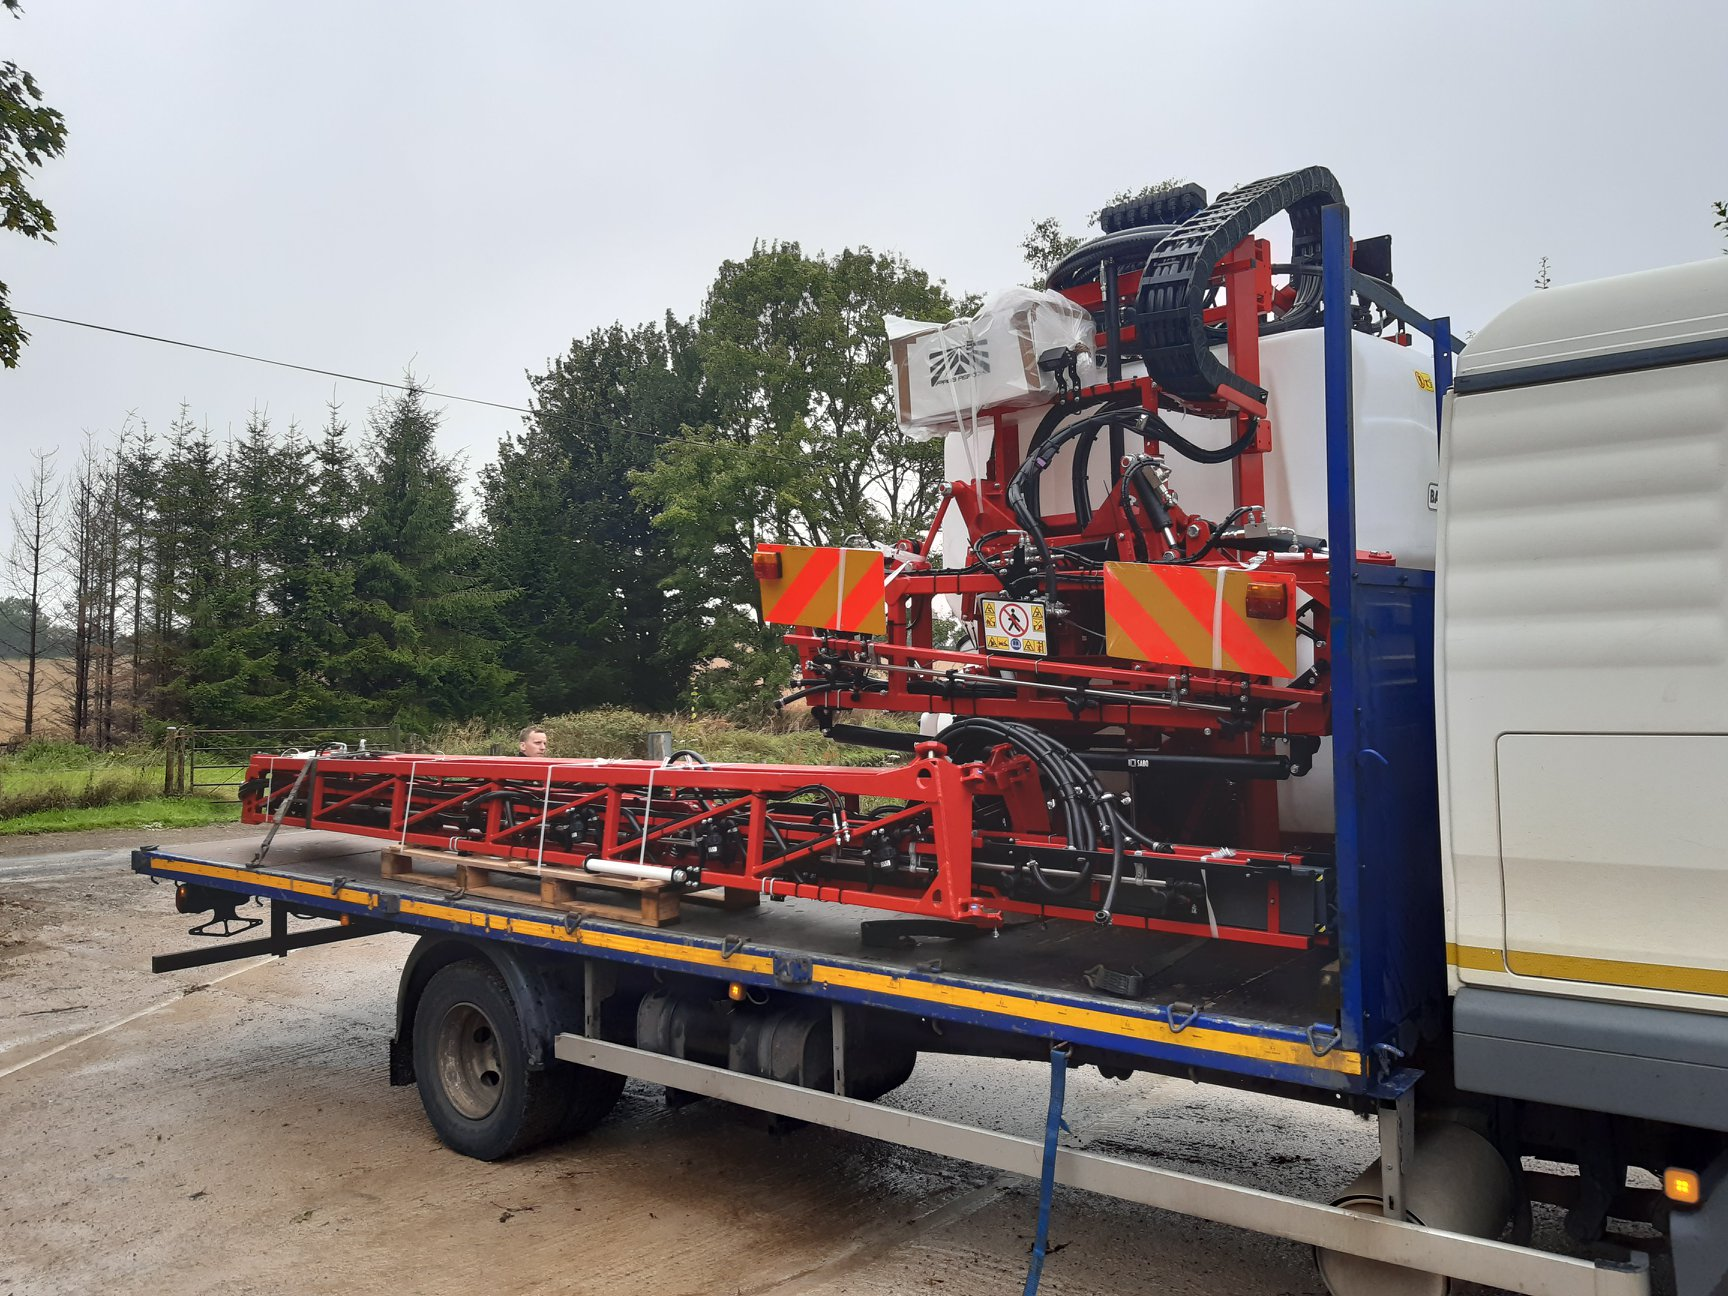 Delivery of the Bargam 1600 Super BLD